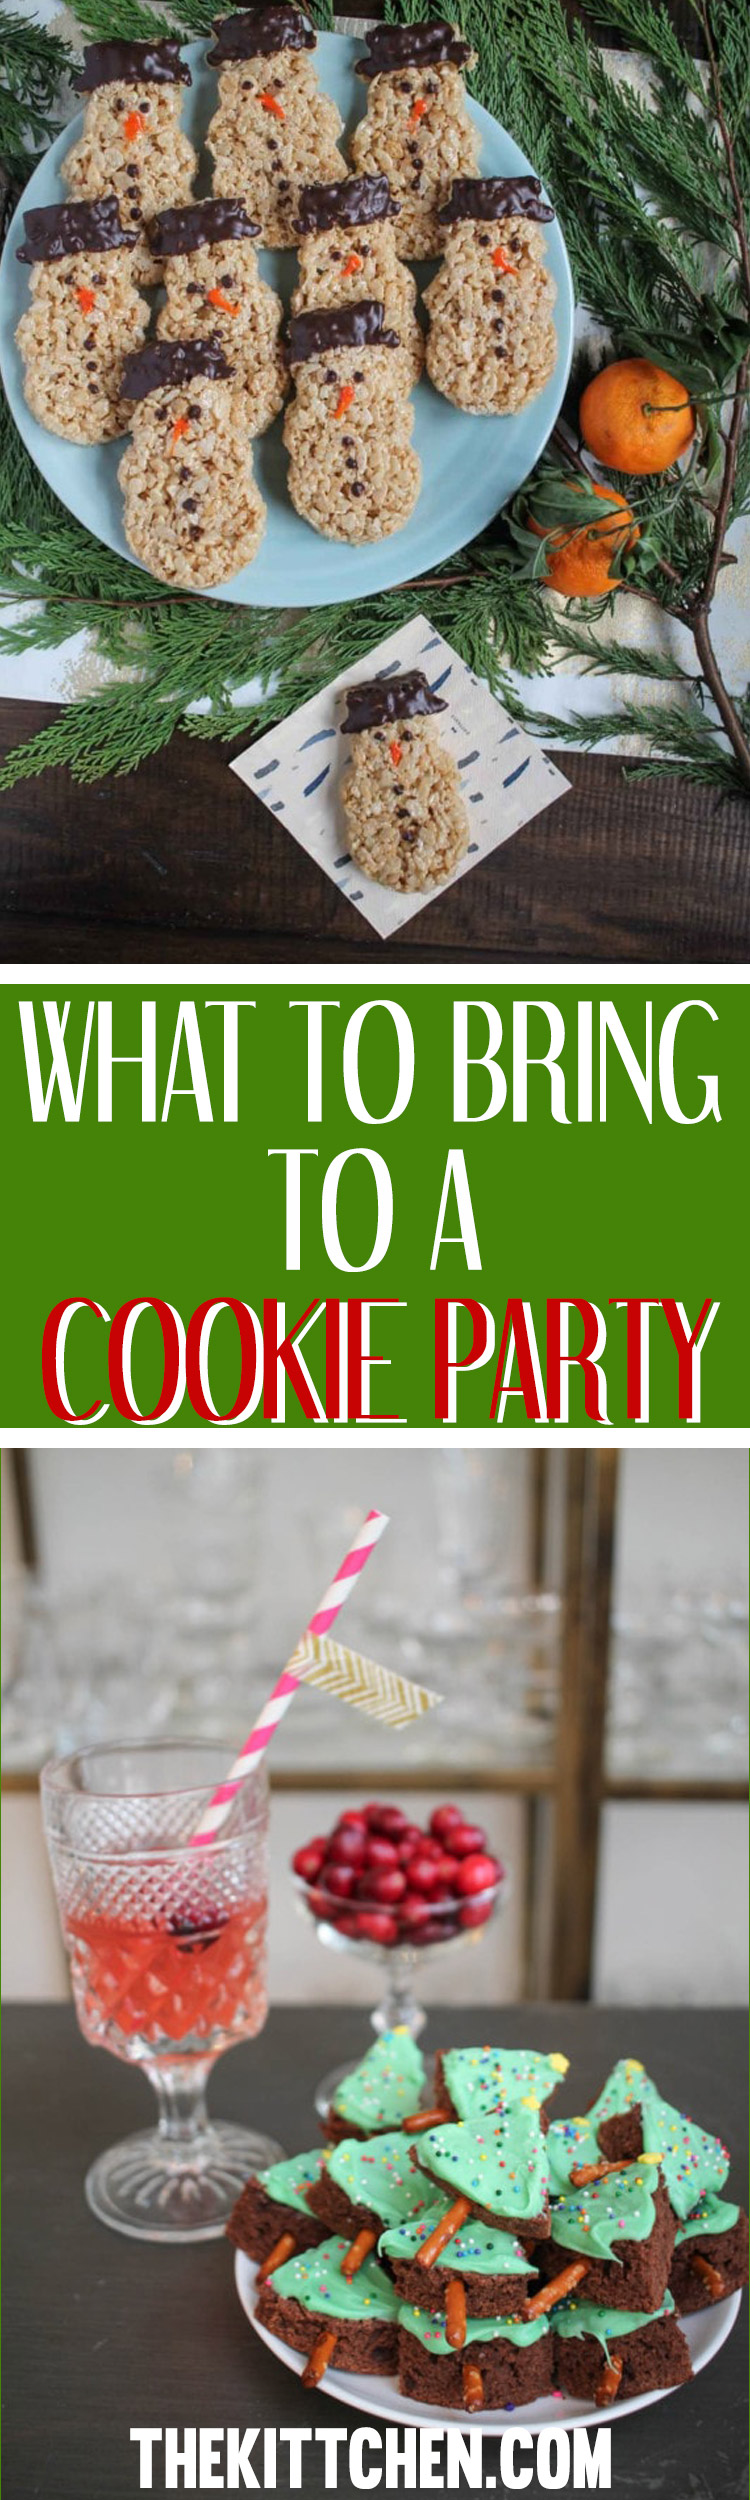 Wondering what to bring to a cookie party? Here is a collection of delicious semi-homemade and from-scratch recipes for cookies and holiday treats!